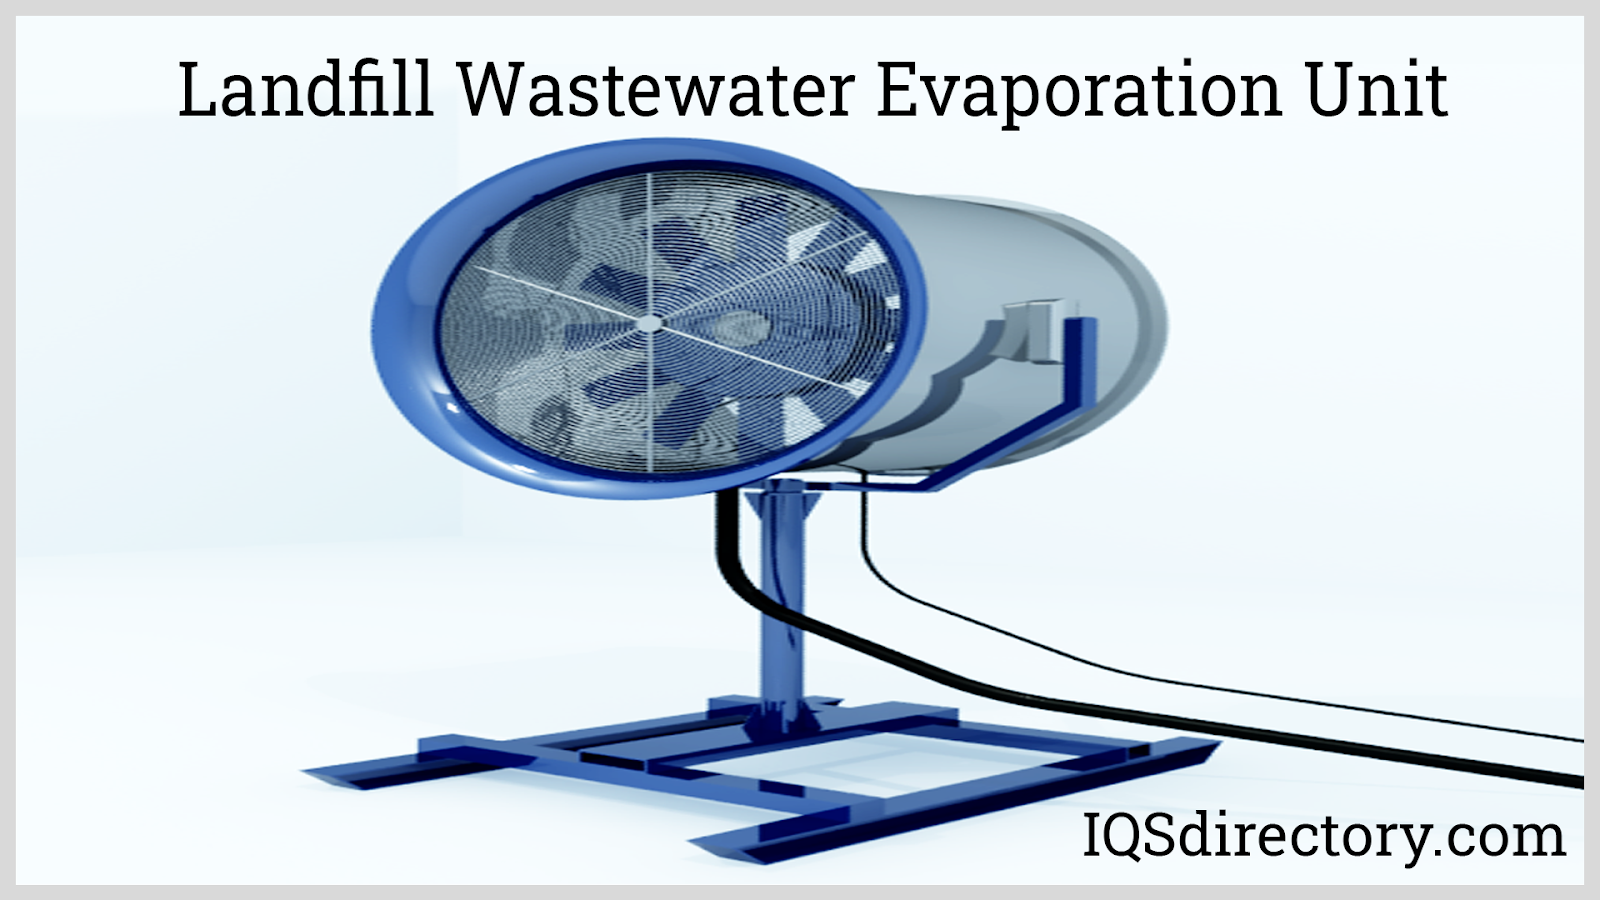 Landfill Wastewater Evaporation Unit